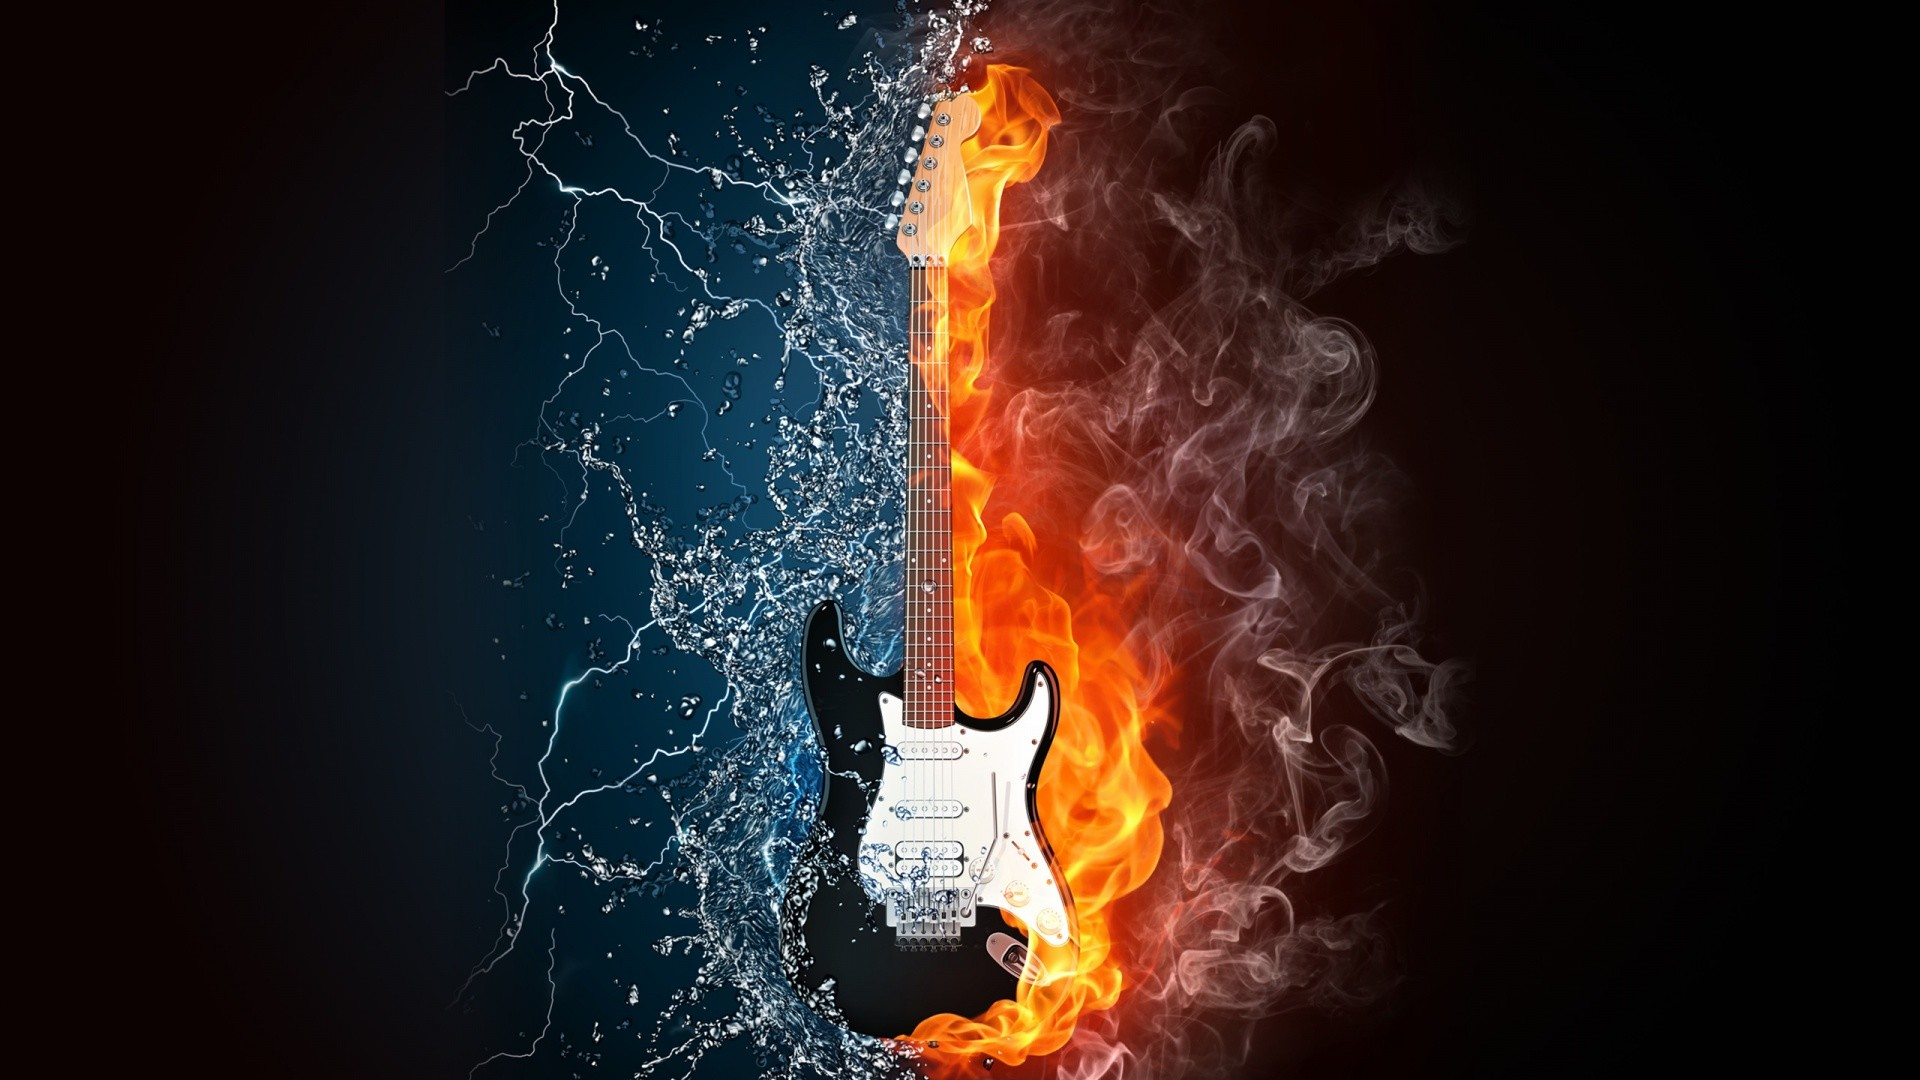 Cool Fire And Water Backgrounds Wallpapertag